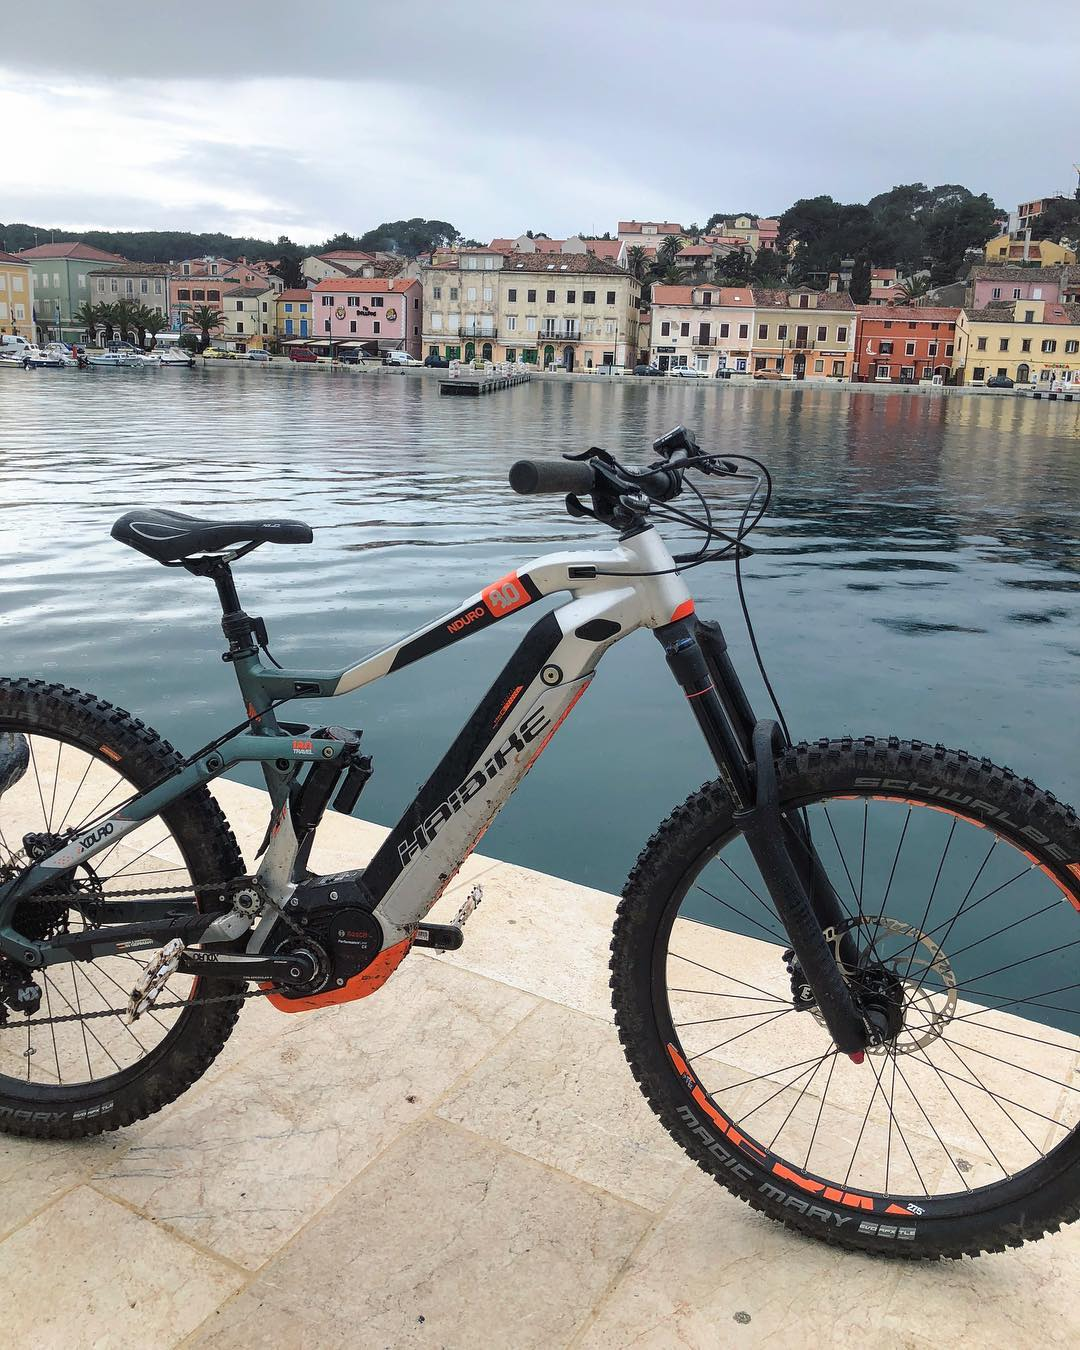 The calm after the DH storm! #losinj #NDURO #downhill #haibike #emtb #ebike #weareeperformance